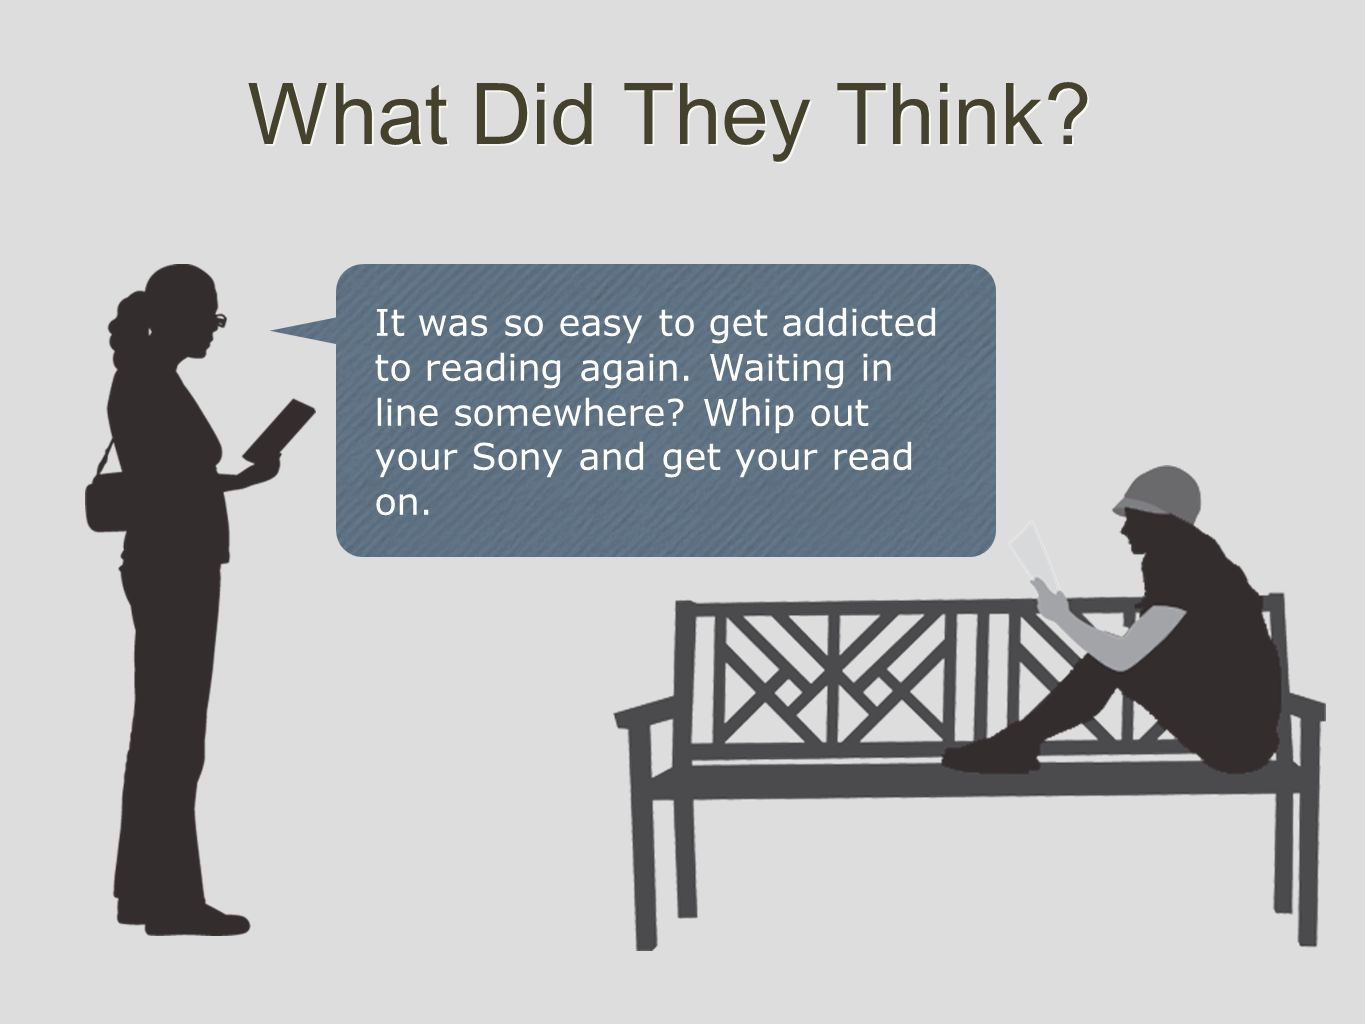 What Did They Think. It was so easy to get addicted to reading again.